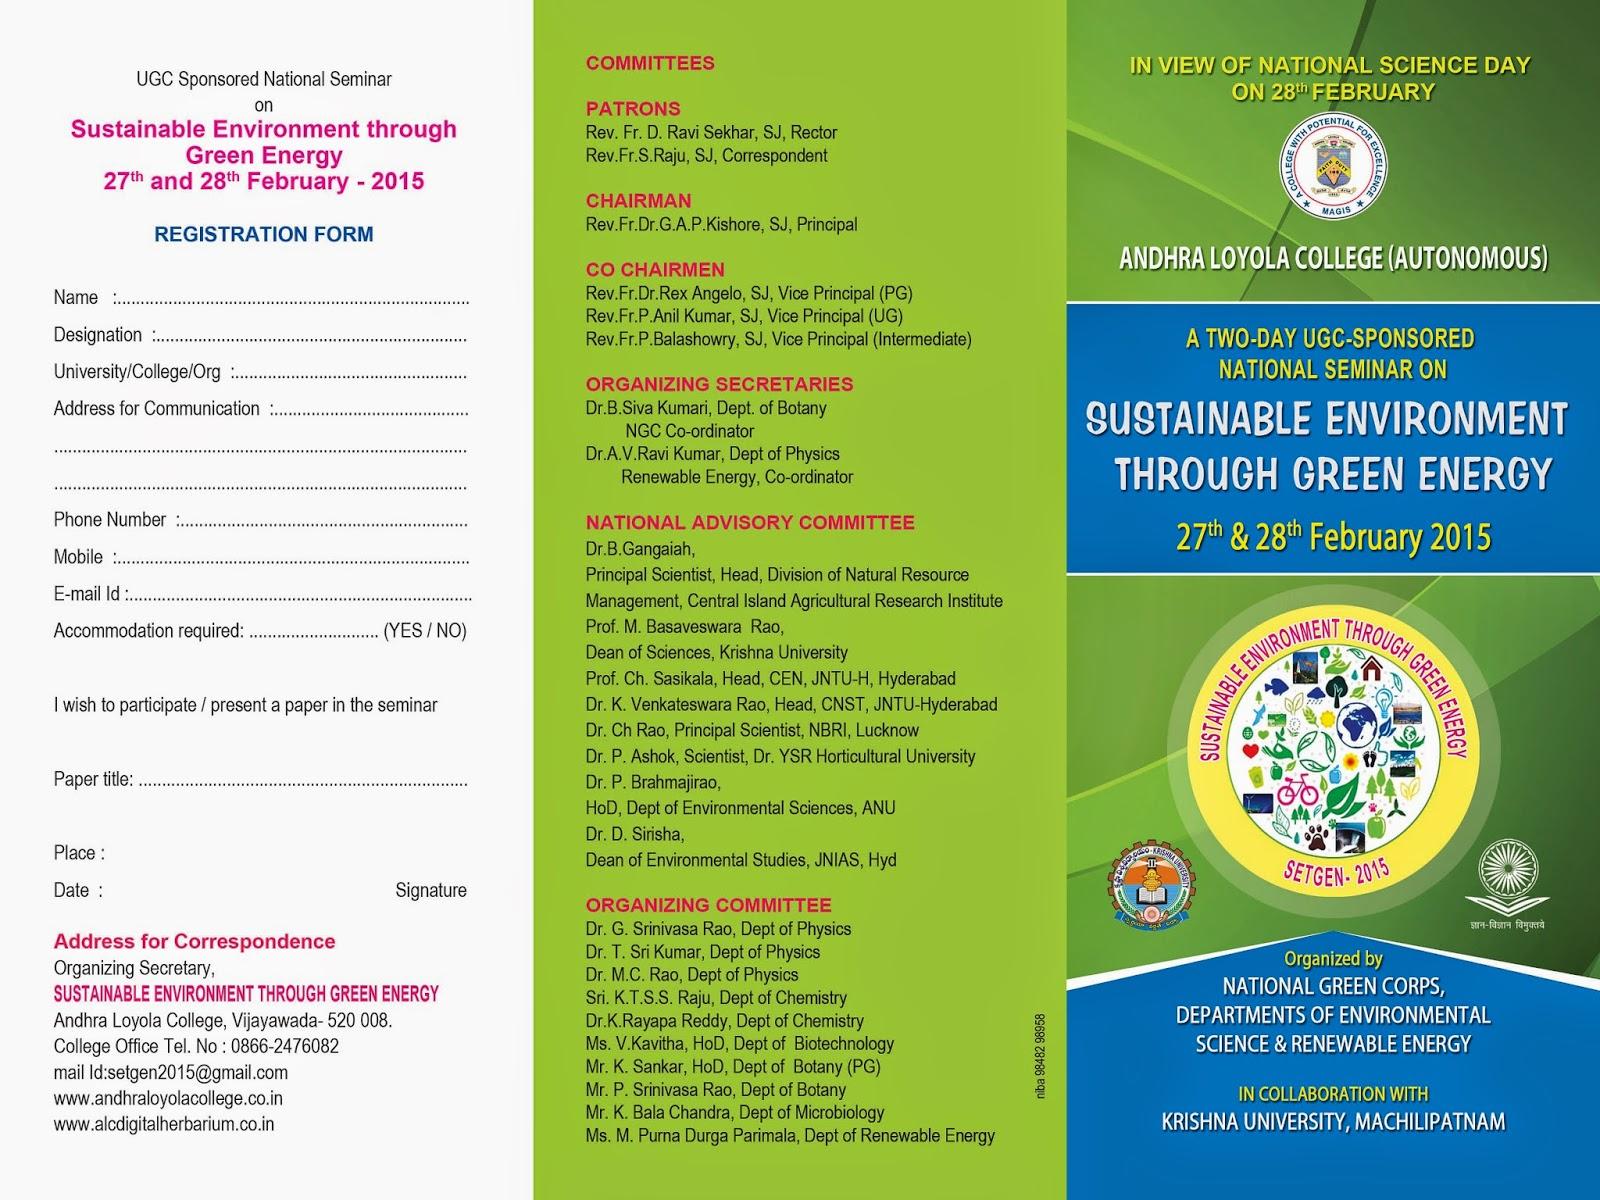 UGC SPONSORED NATIONAL SEMINAR BROCHURE